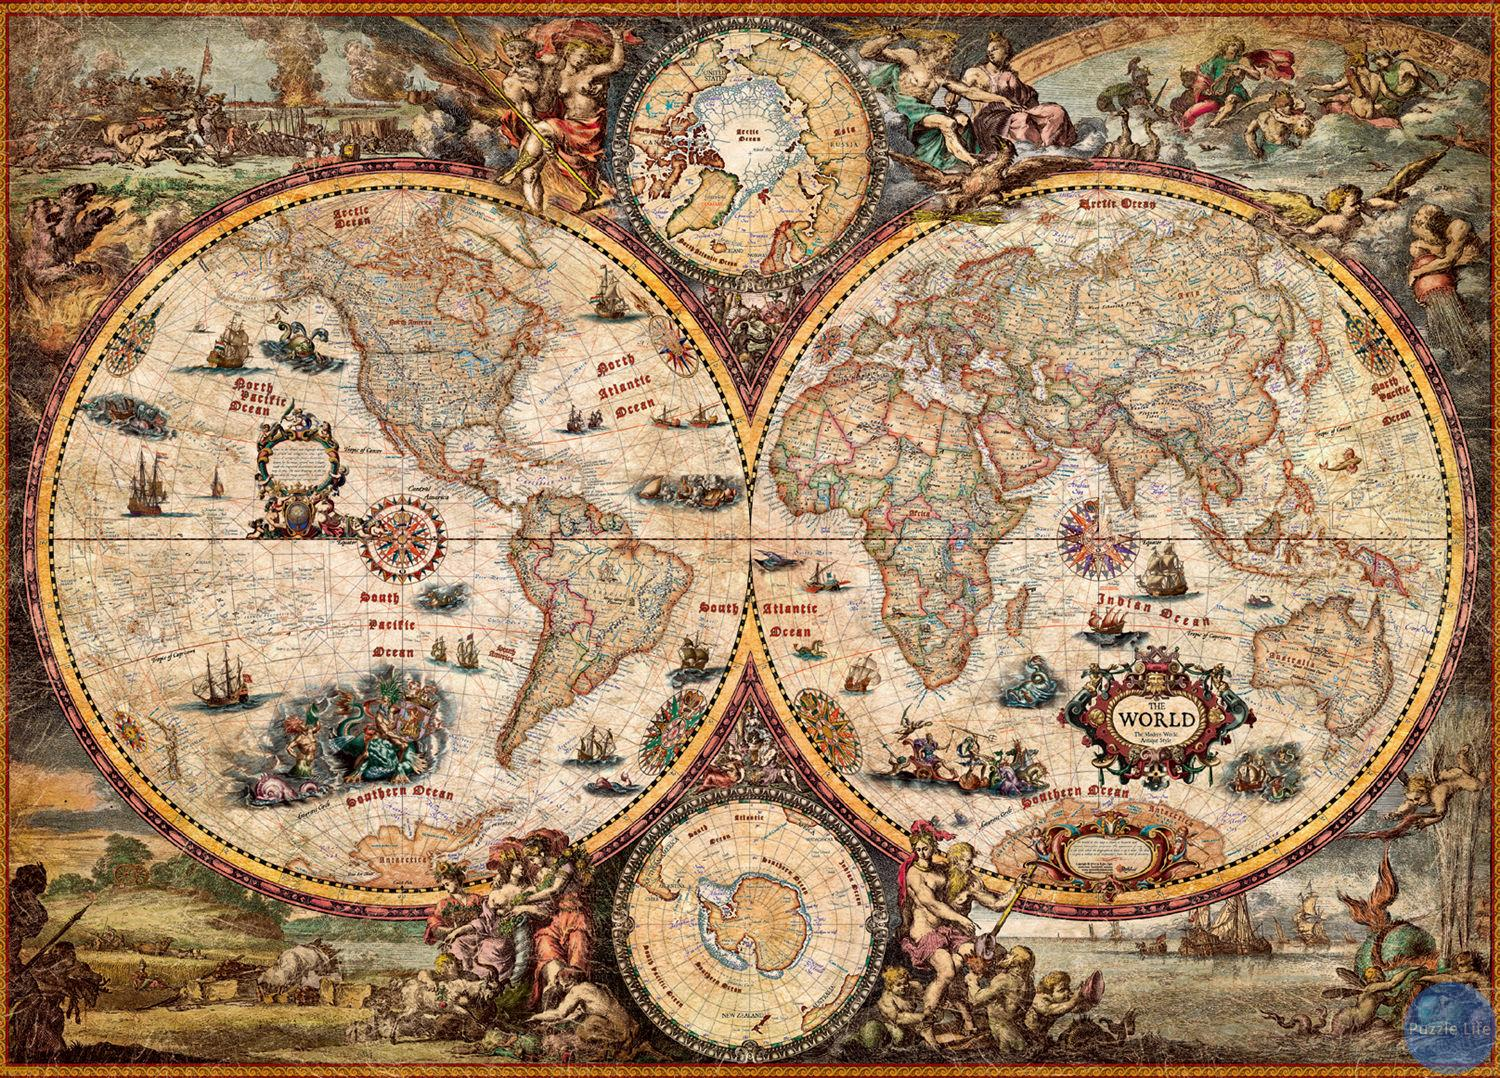 Assemble Ancient World Map 2000 Pieces of Reynolds Puzzle Toys for Adult Gift Toys